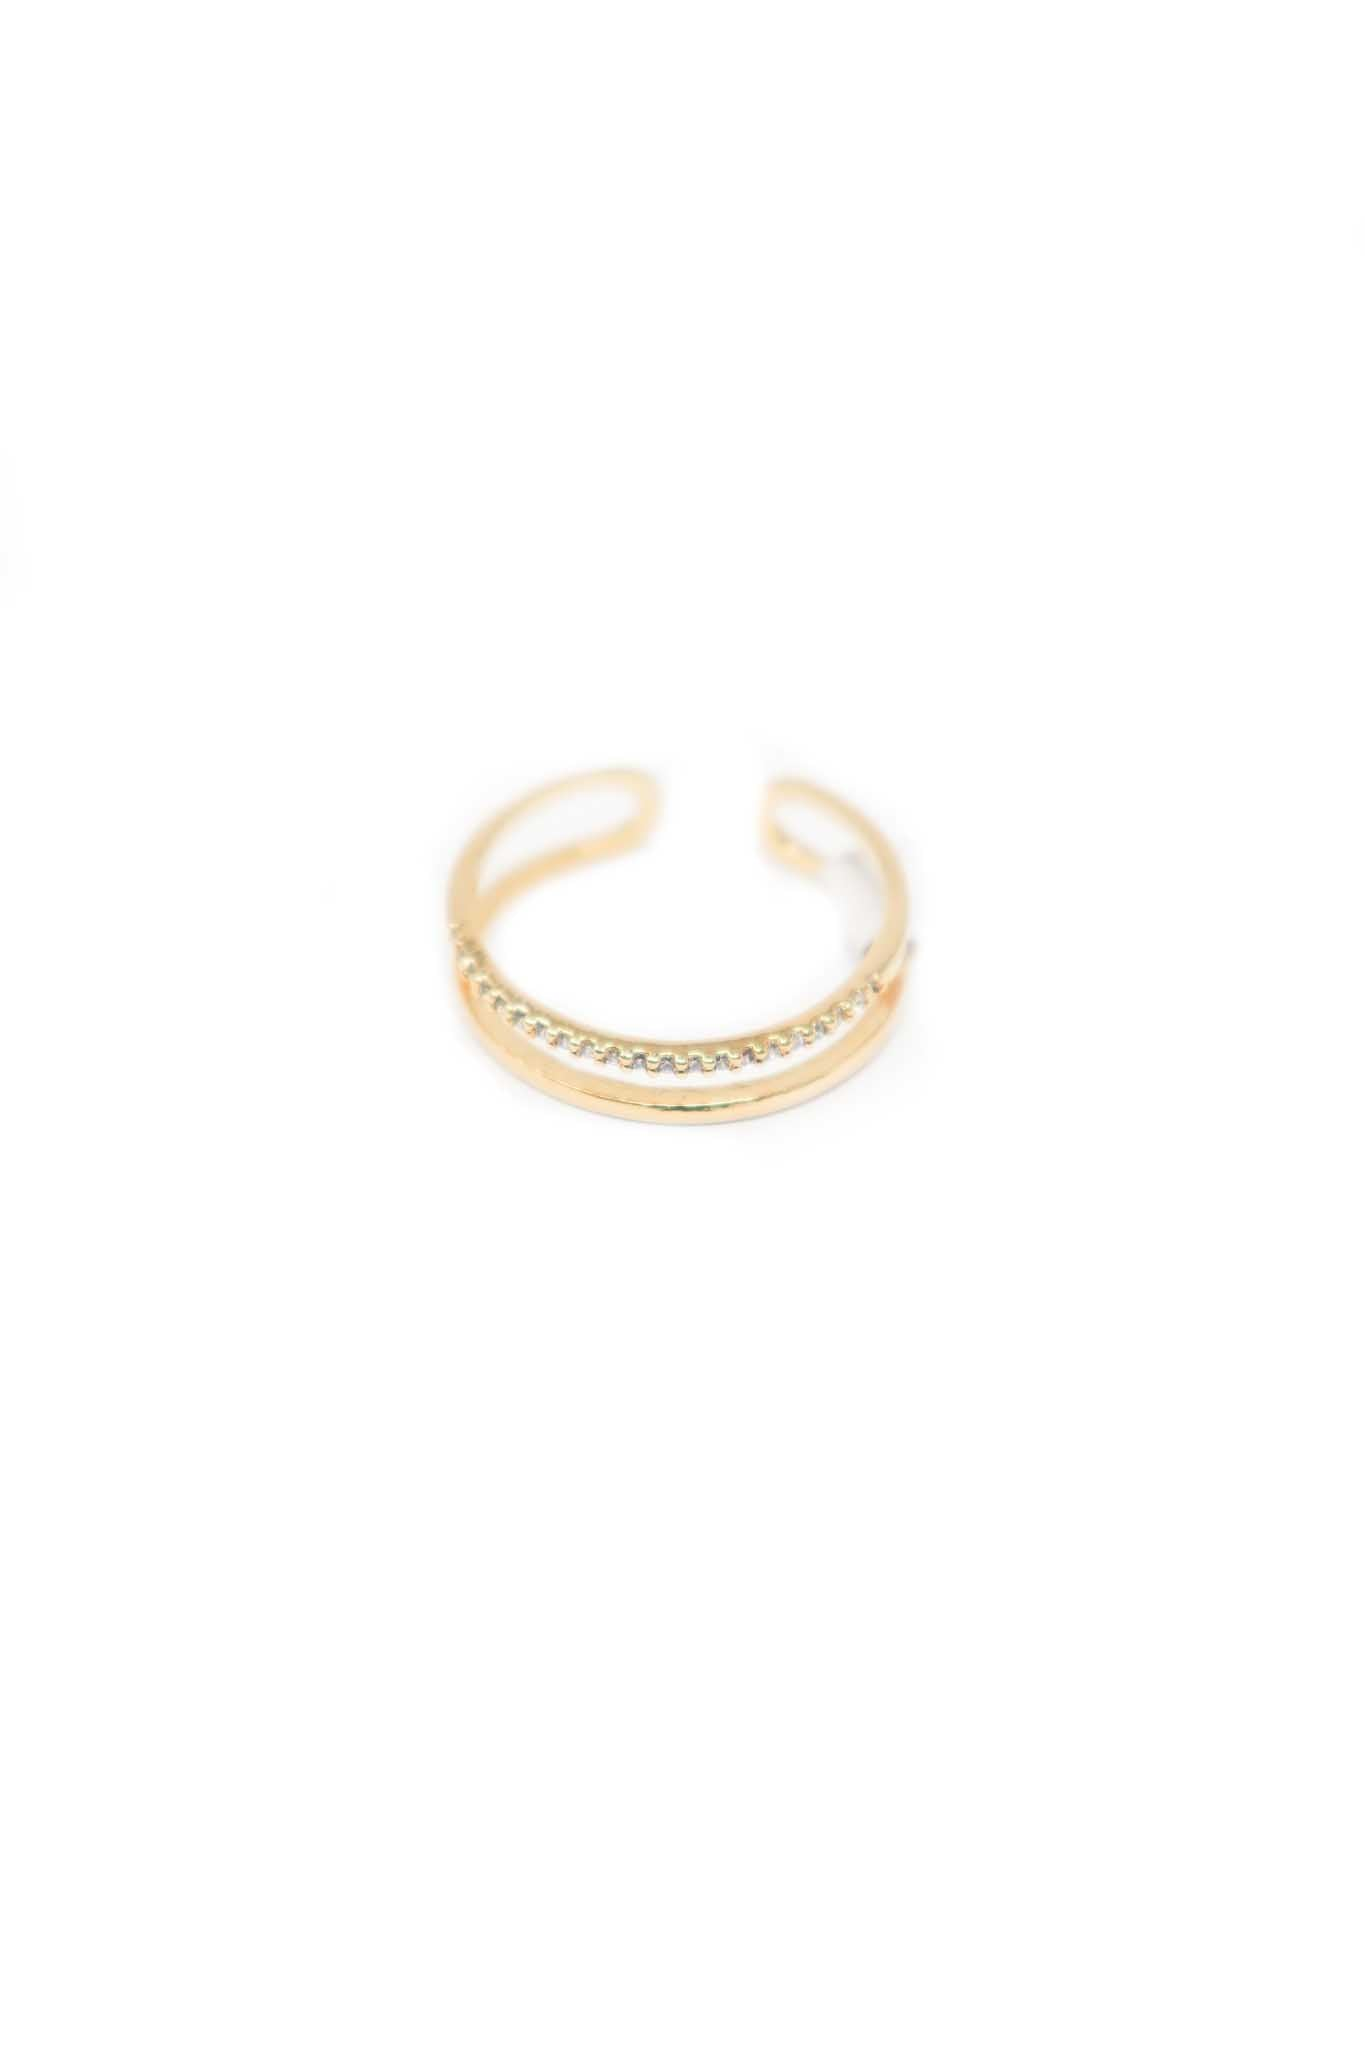 Double Band Gold Ring - Gabrielle's Biloxi